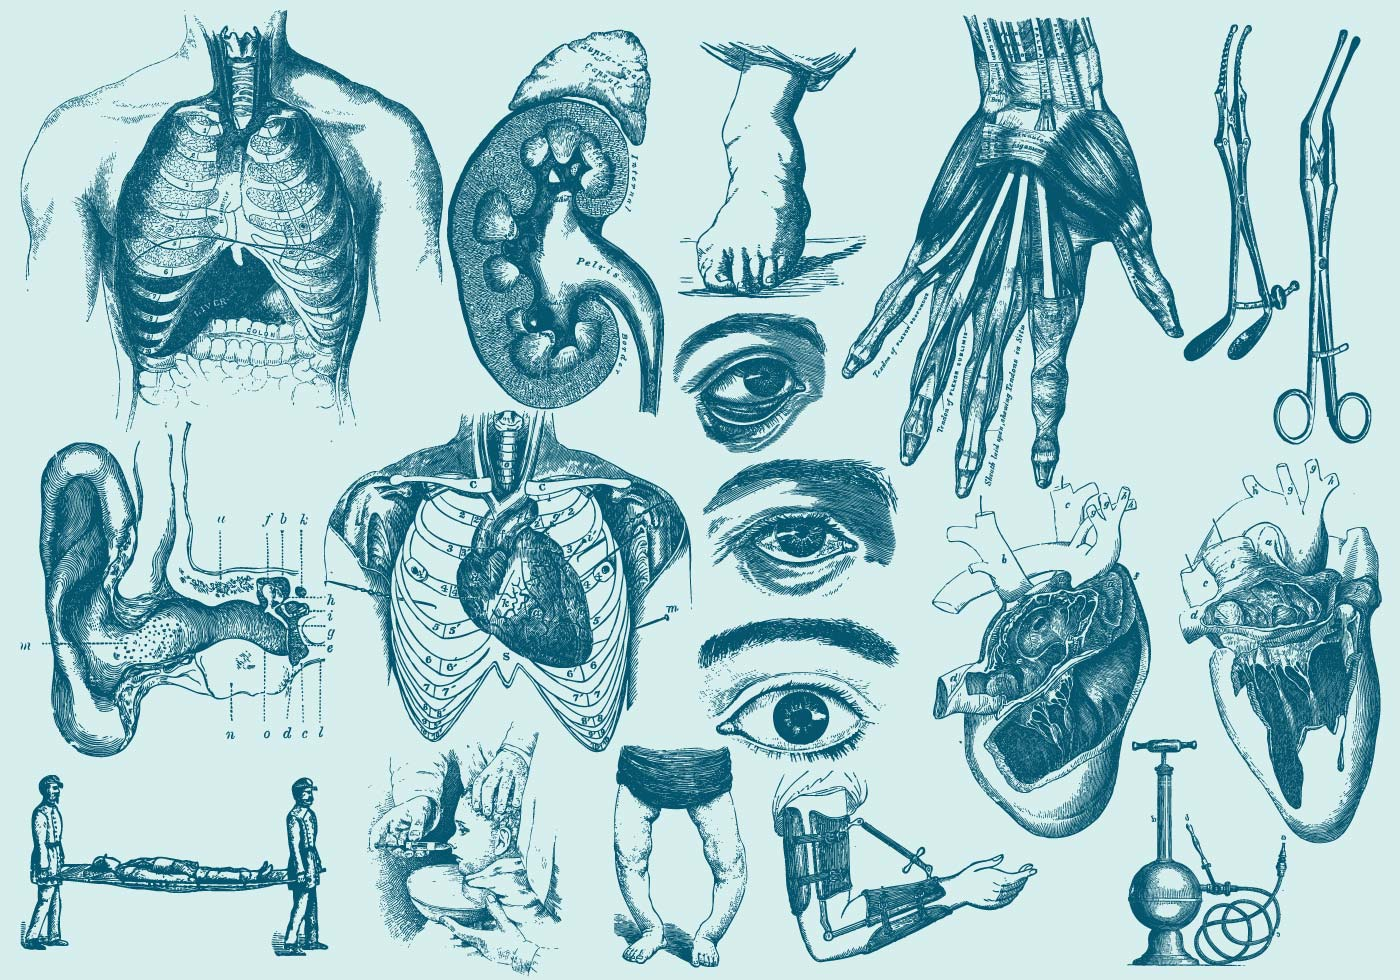 Blue Anatomy And Health Care Illustrations - Download Free Vector ...